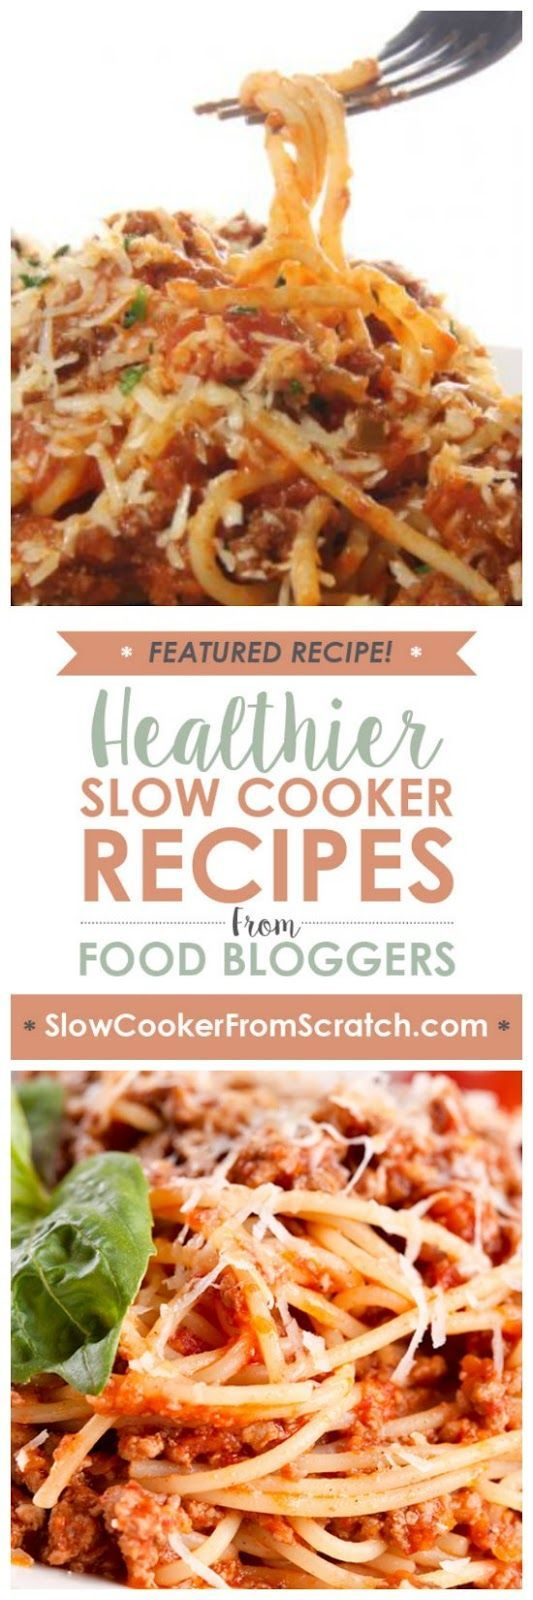 Dry spaghetti cooks right in the CrockPot in this Slow Cooker Skinny Spaghetti from Skinny Ms. I think this sounds delicious for an easy and healthy spaghetti dinner the whole family will love! [found on SlowCookerFromScratch.com]